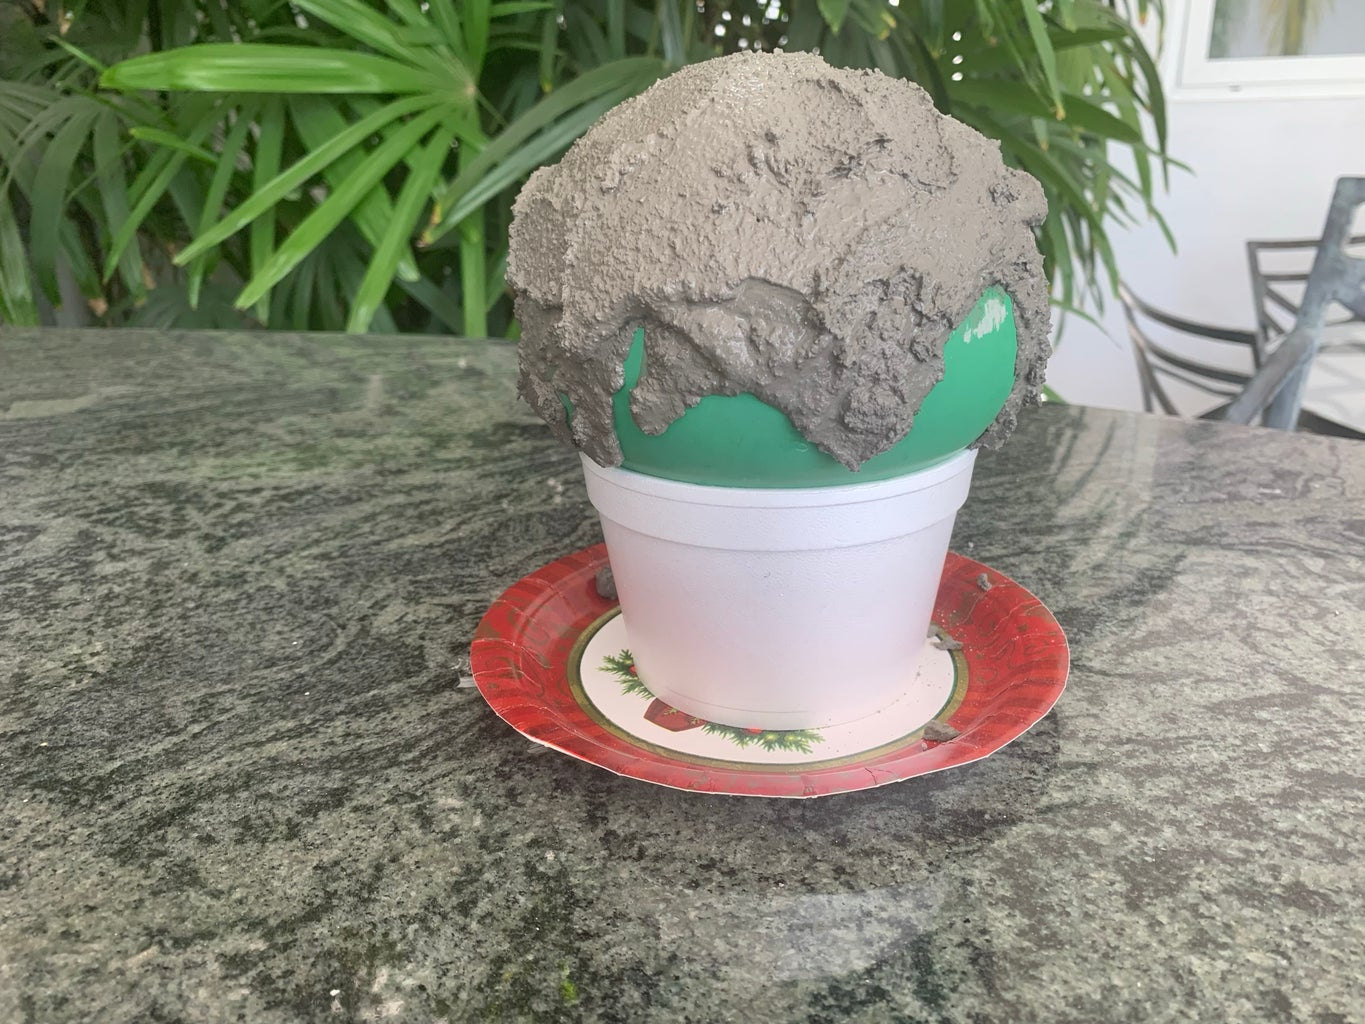 Cover the Balloon in the Cement Mixture